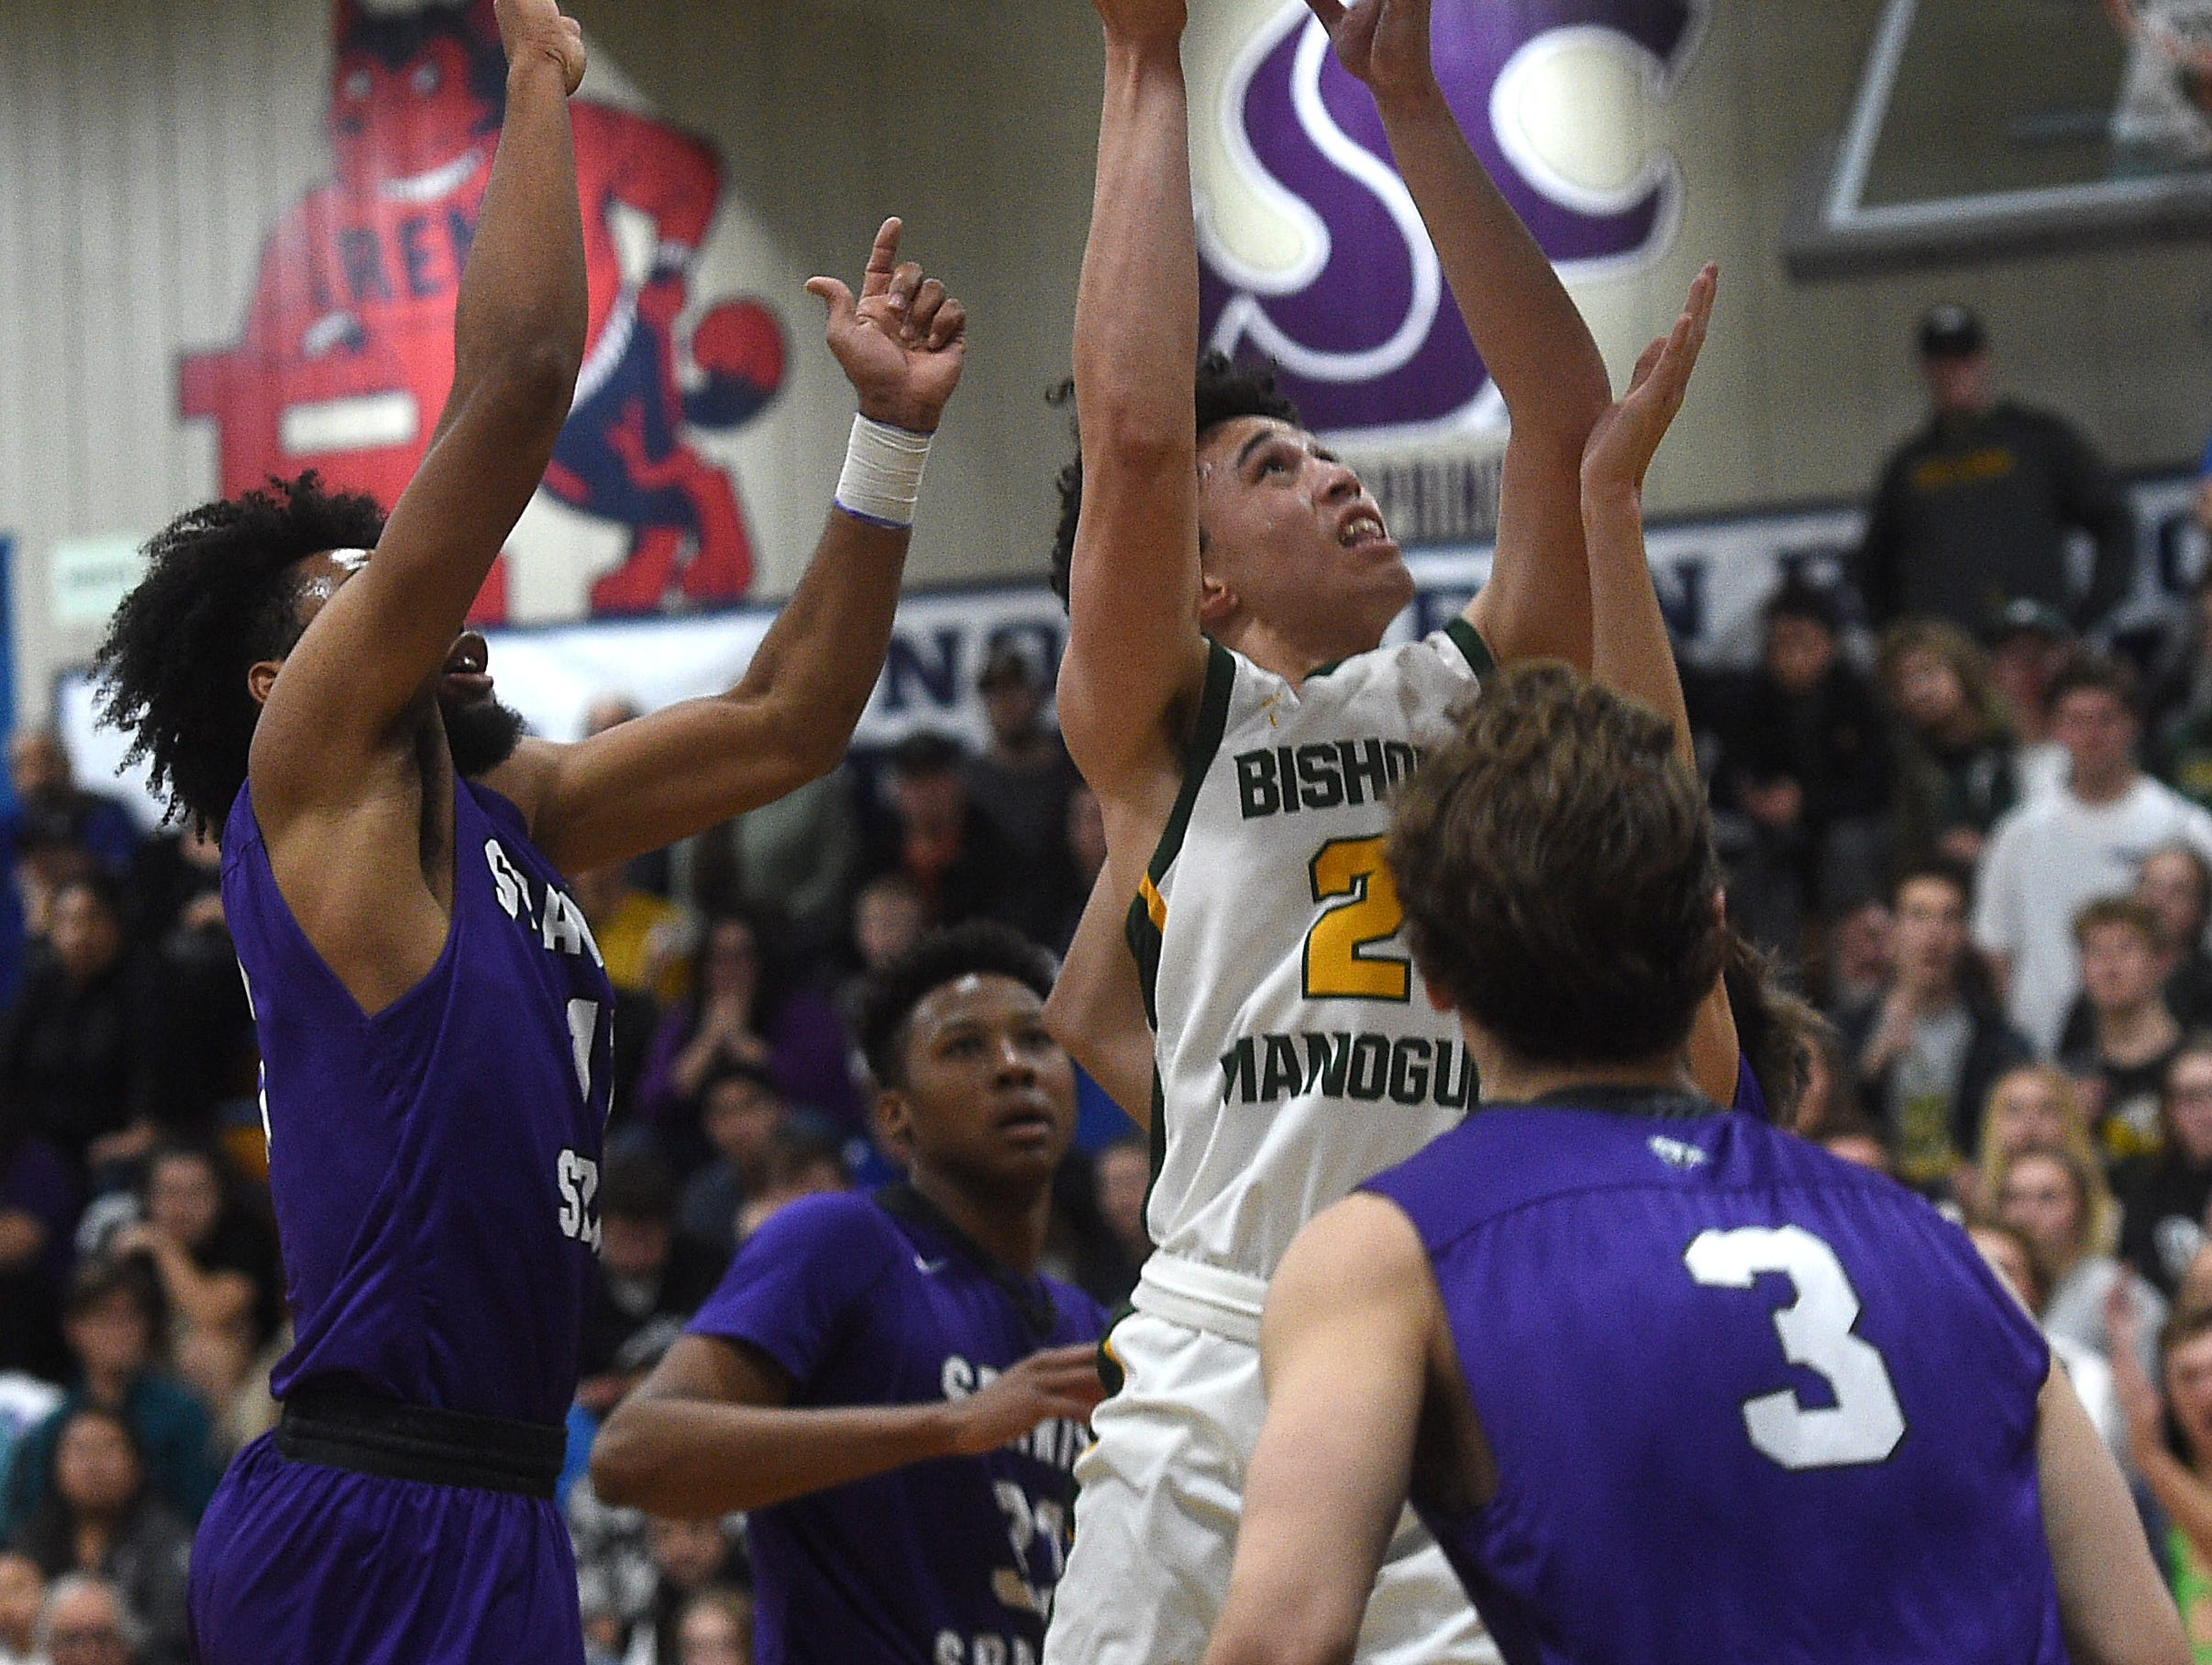 Bishop Manogue's Gabe Bansuelo shoots while taking on Spanish Springs during the Northern Region Basketball Championship game in Carson City on Feb. 23, 2019.